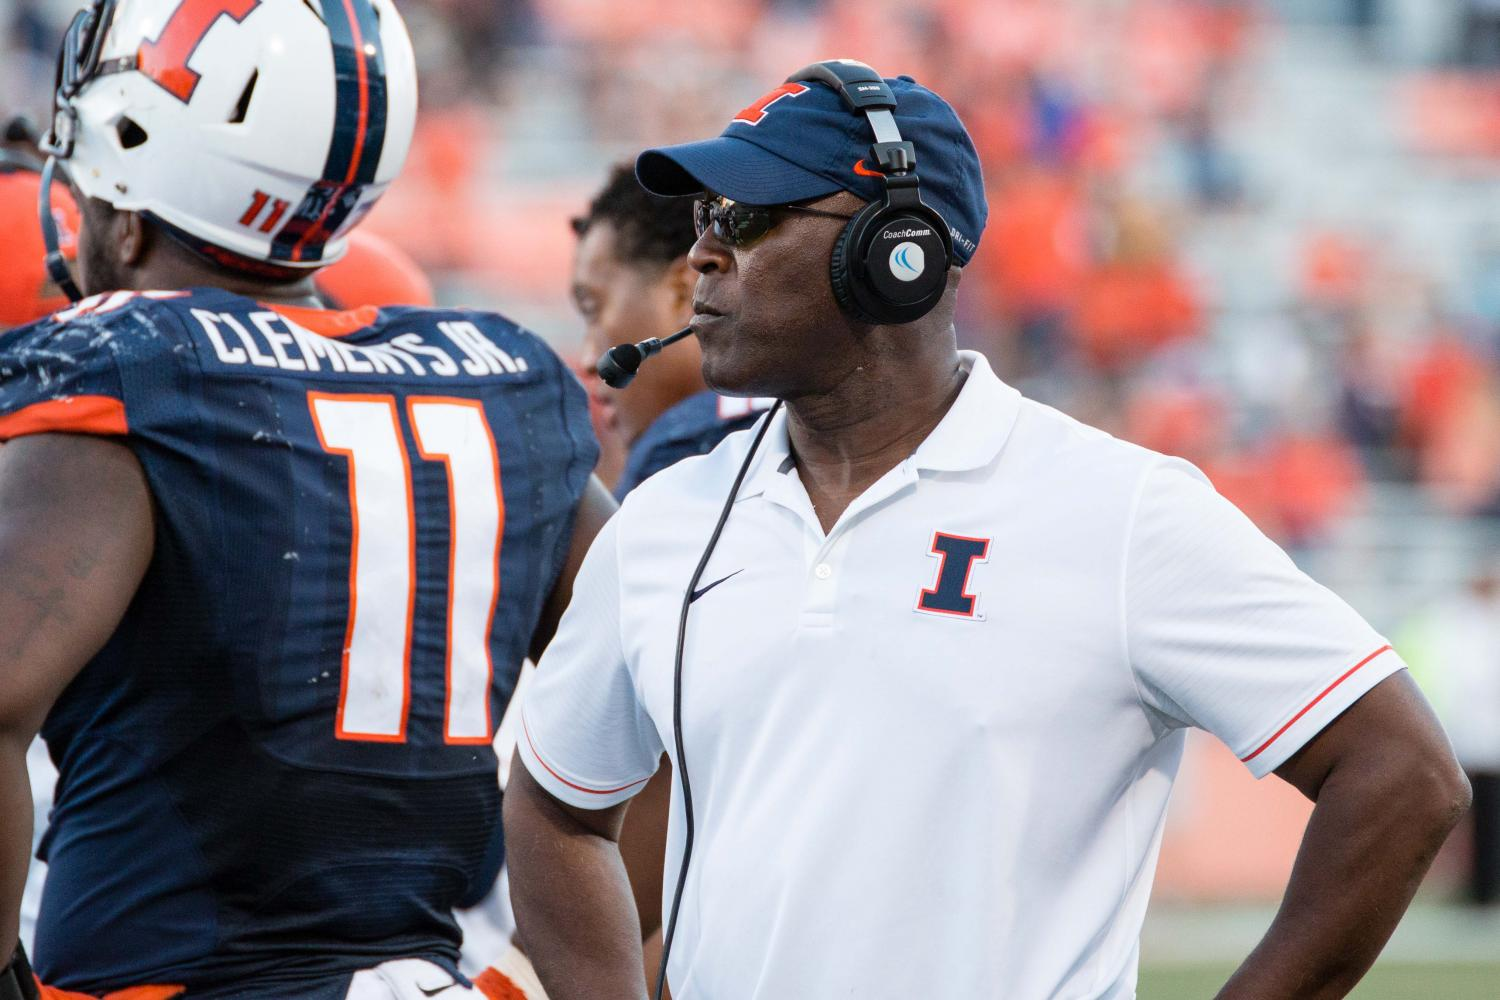 Illinois+head+coach+Lovie+Smith+walks+down+the+sideline+during+a+timeout+in+the+game+against+Western+Michigan+at+Memorial+Stadium+on+Sept.+17.+Illinois+would+later+end+the+season+3-9.